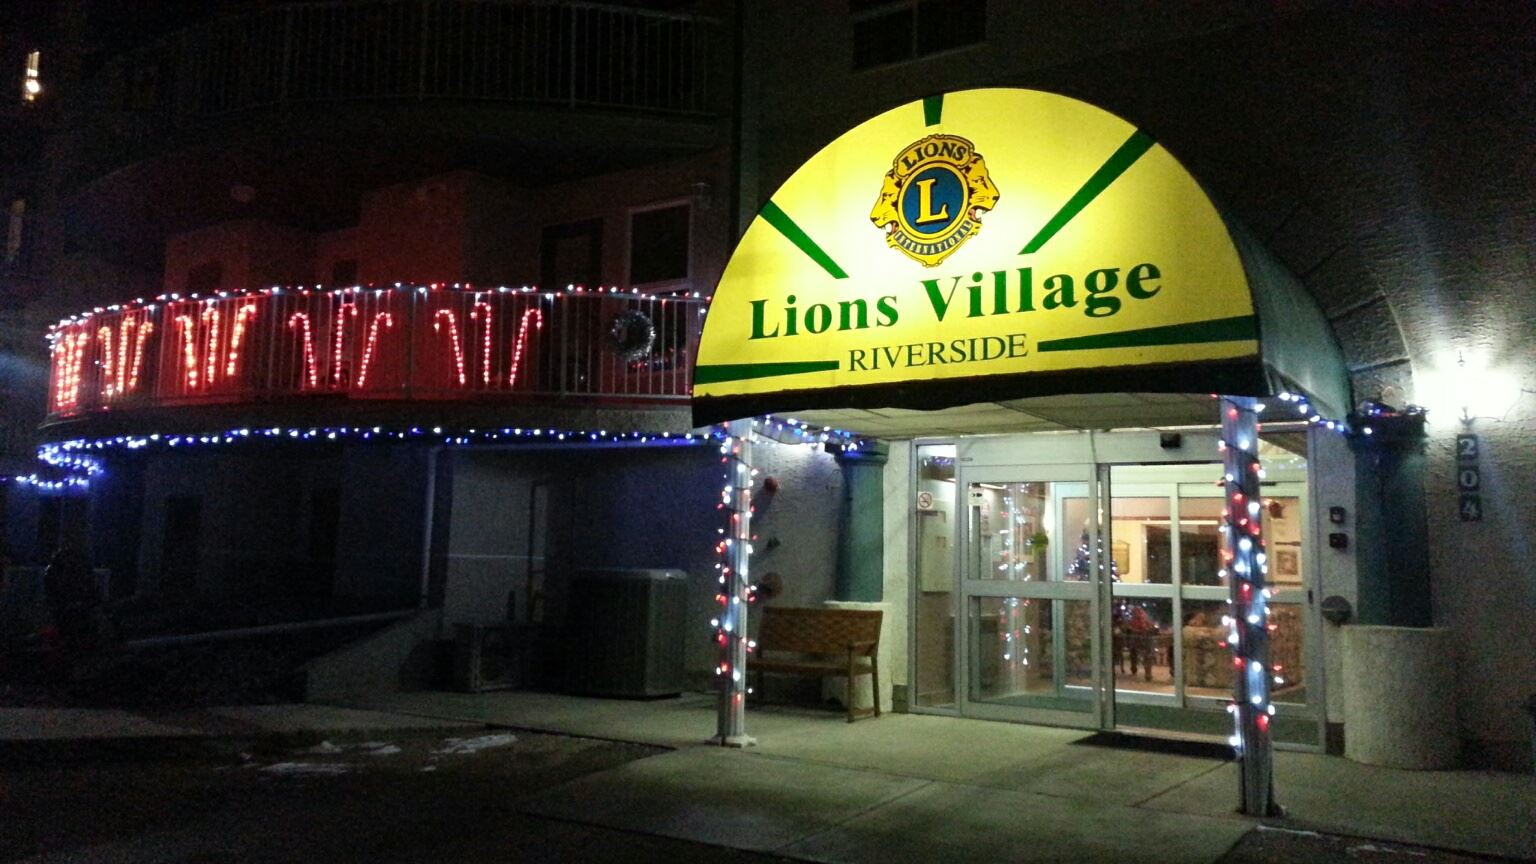 Lions Village Riverside